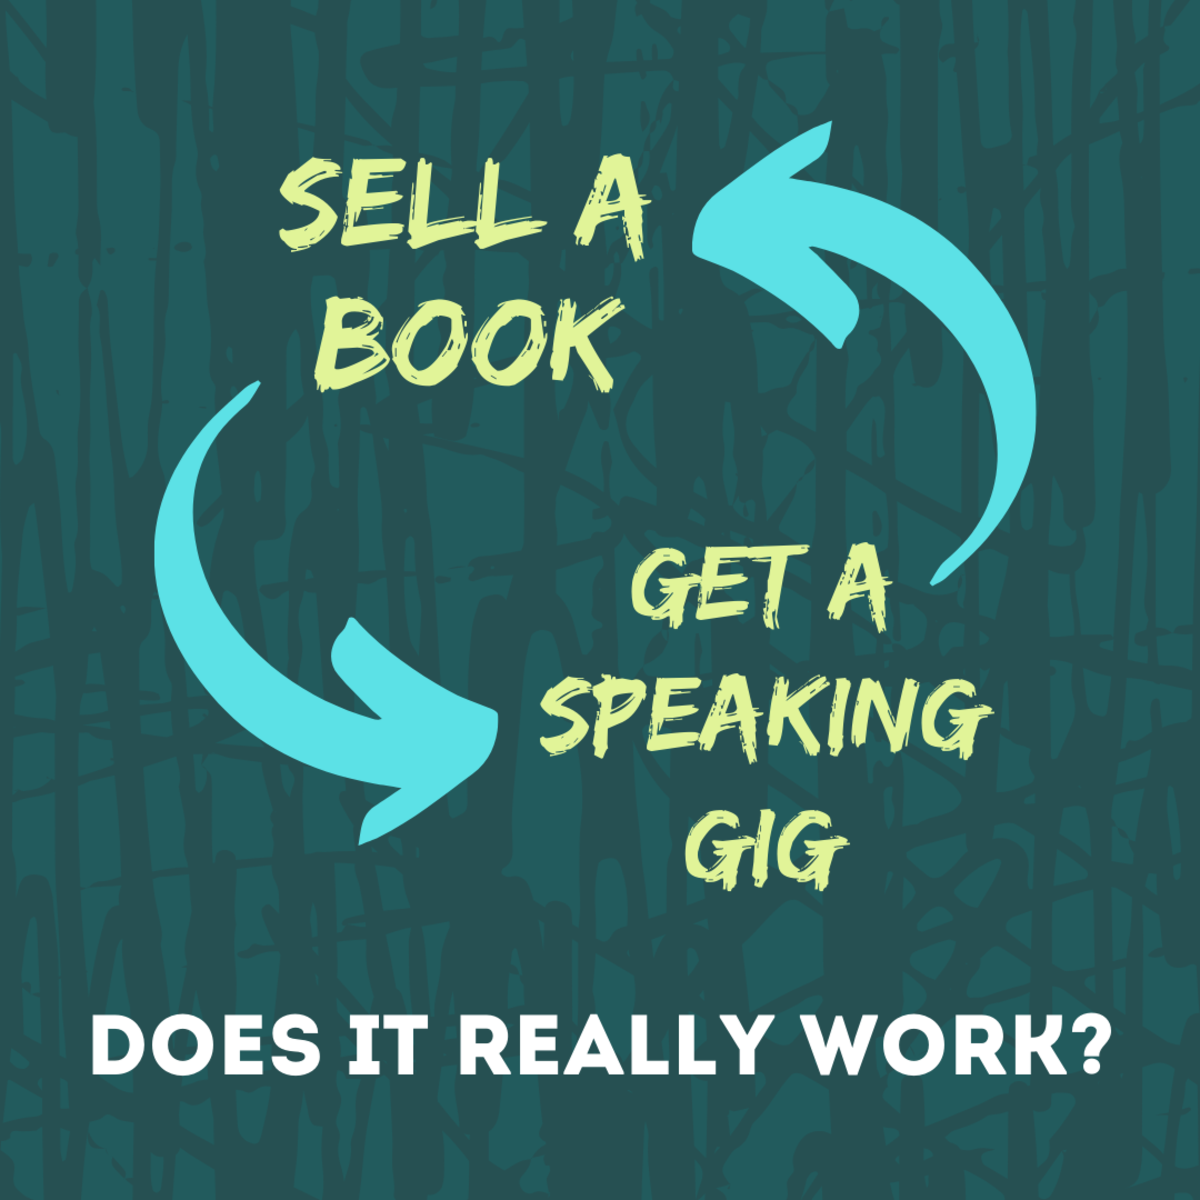 Does a self-published book help you land public speaking gigs—and do those gigs help you sell your book? The answer is both yes and no!